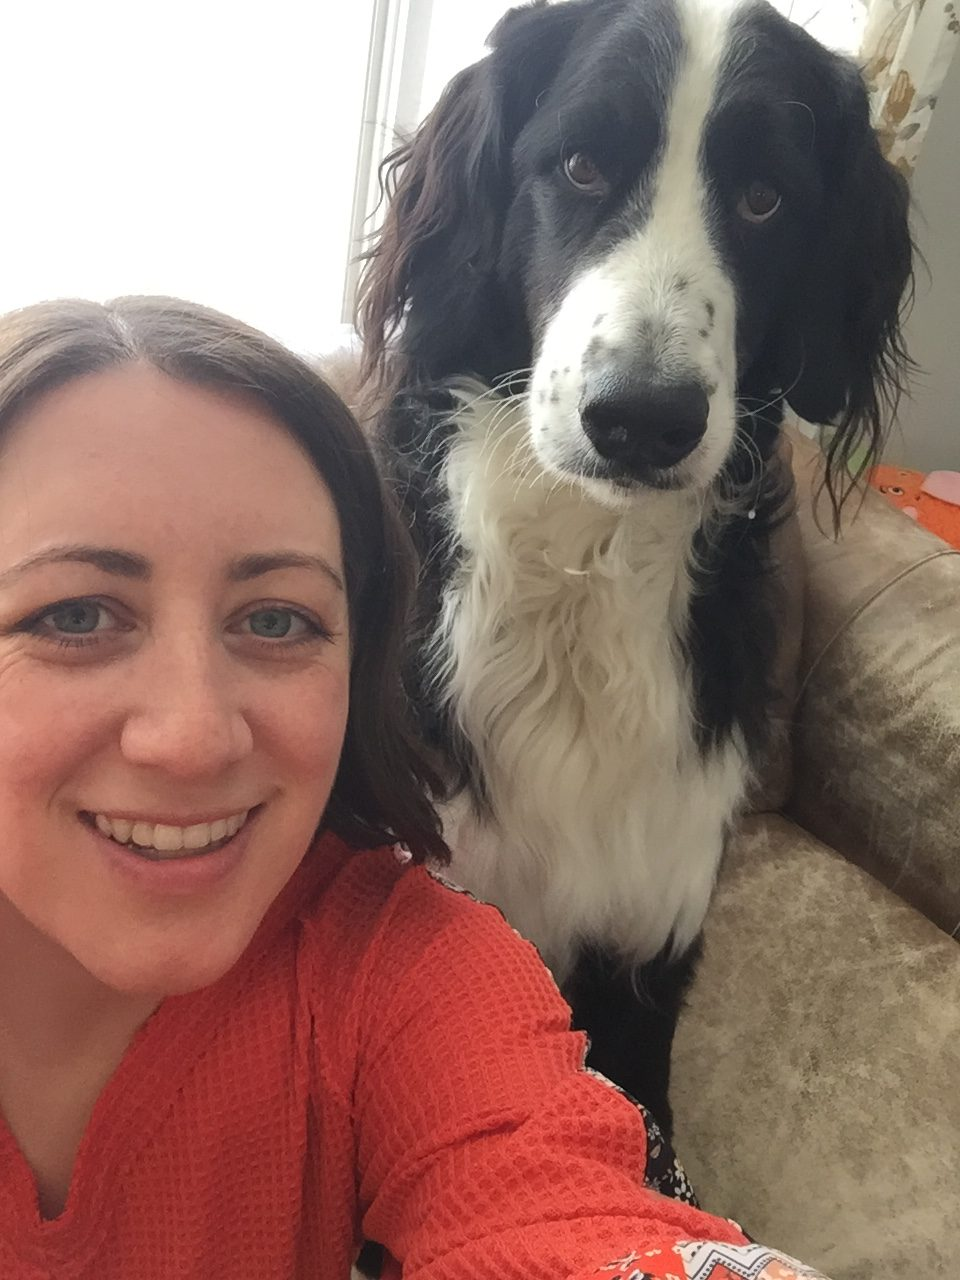 A selfie of a woman in a red orange sweater with a black and white dog